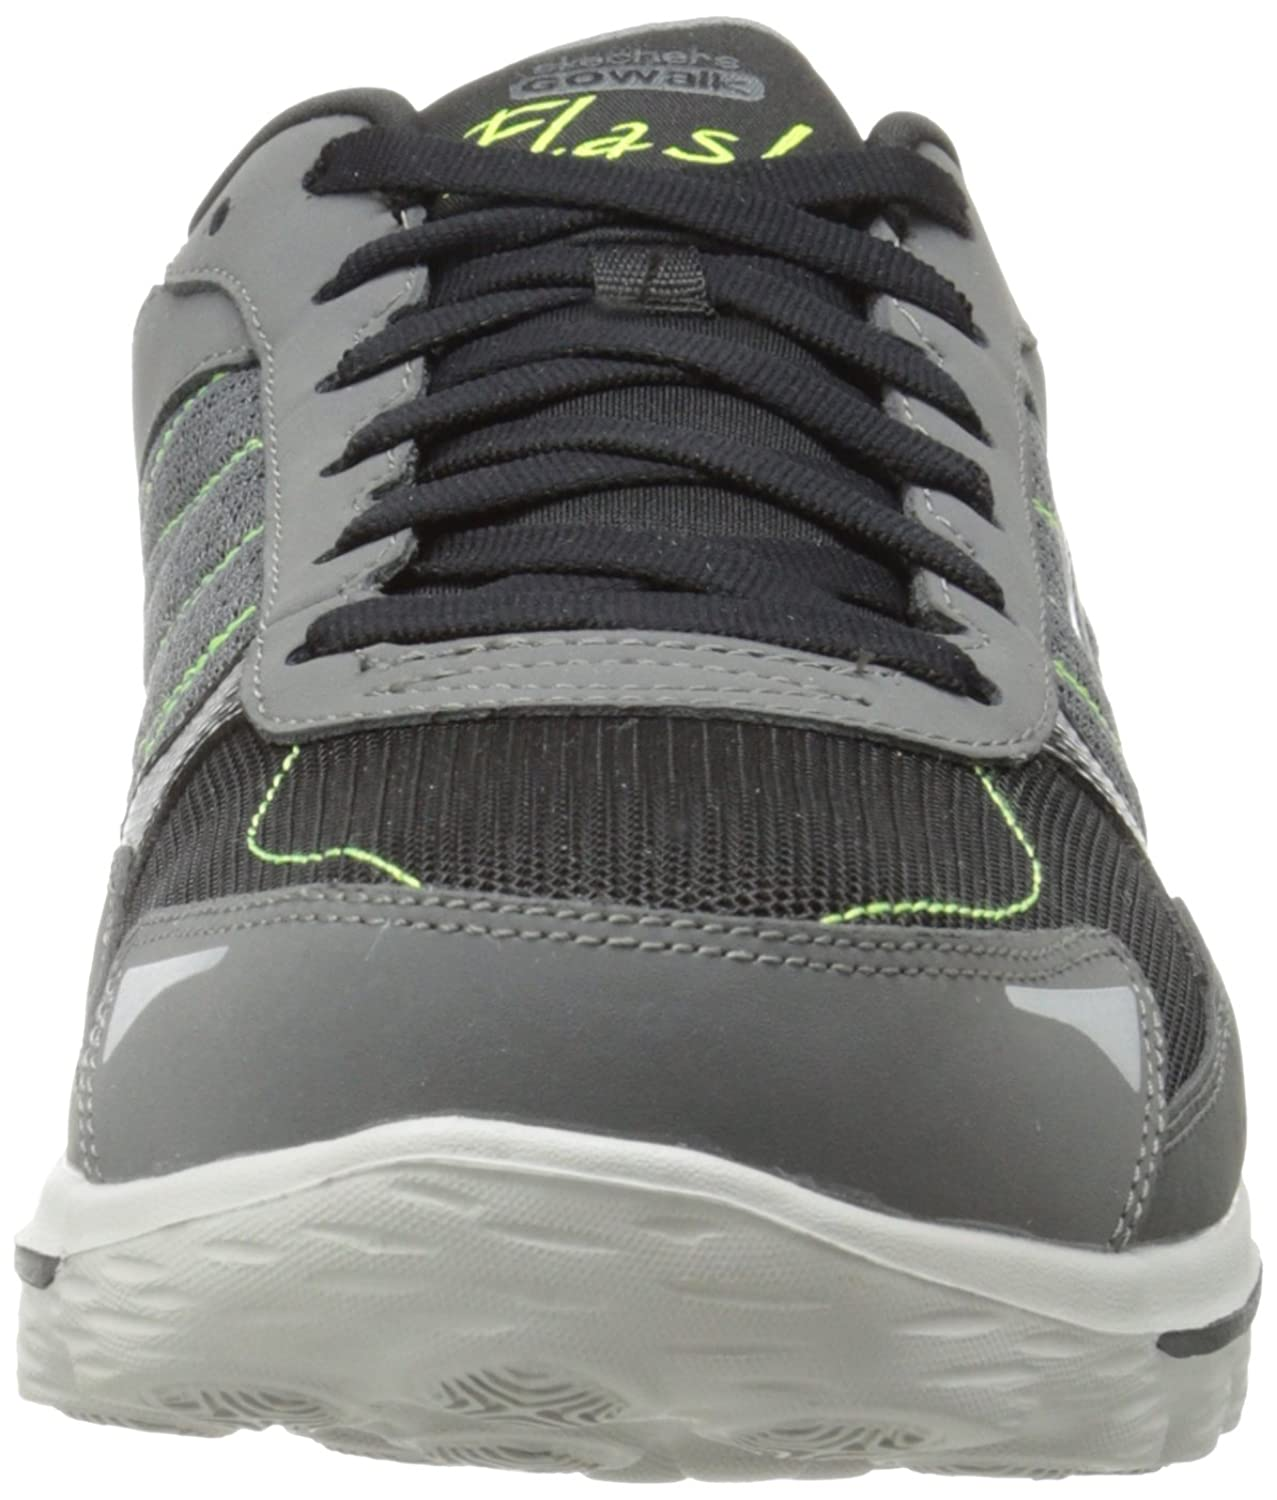 Skechers Kvinners Gowalk 2 - Flash Walking Sneakers Fra Mållinjen YZ0BcV2